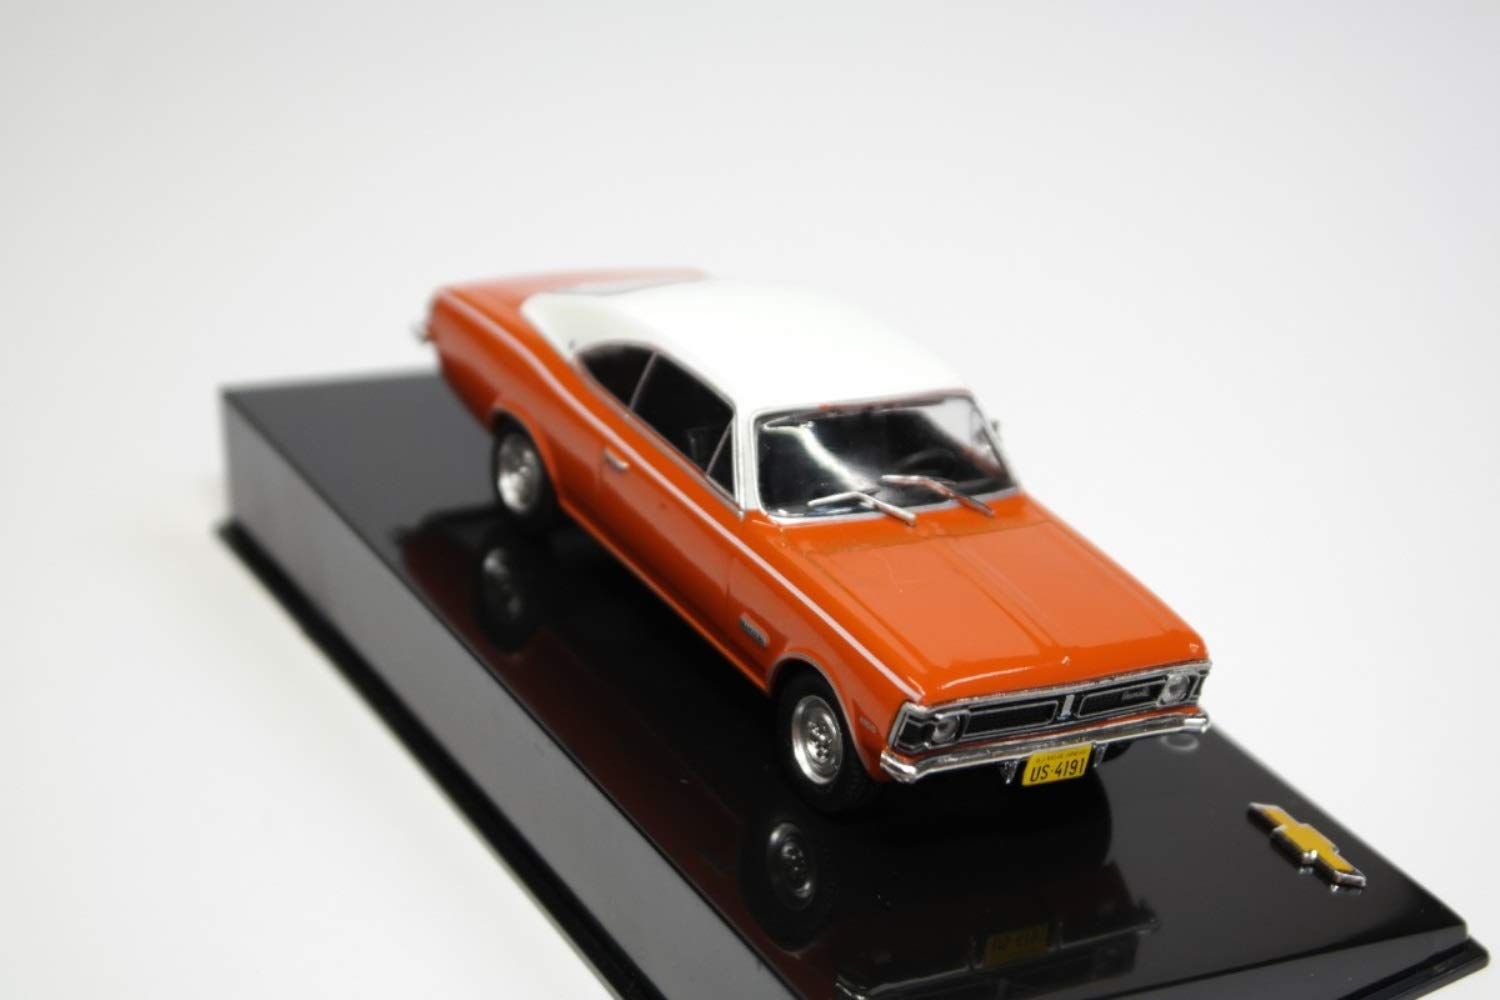 Chevrolet Opala Gran Luxo Hugger Orange with Antique White Roof 1971 Year - Executive Car - 1/43 Scale Collectible Model Vehicle - Chevrolet Collection #26 by 1/43 AZEBUY - SEDANS